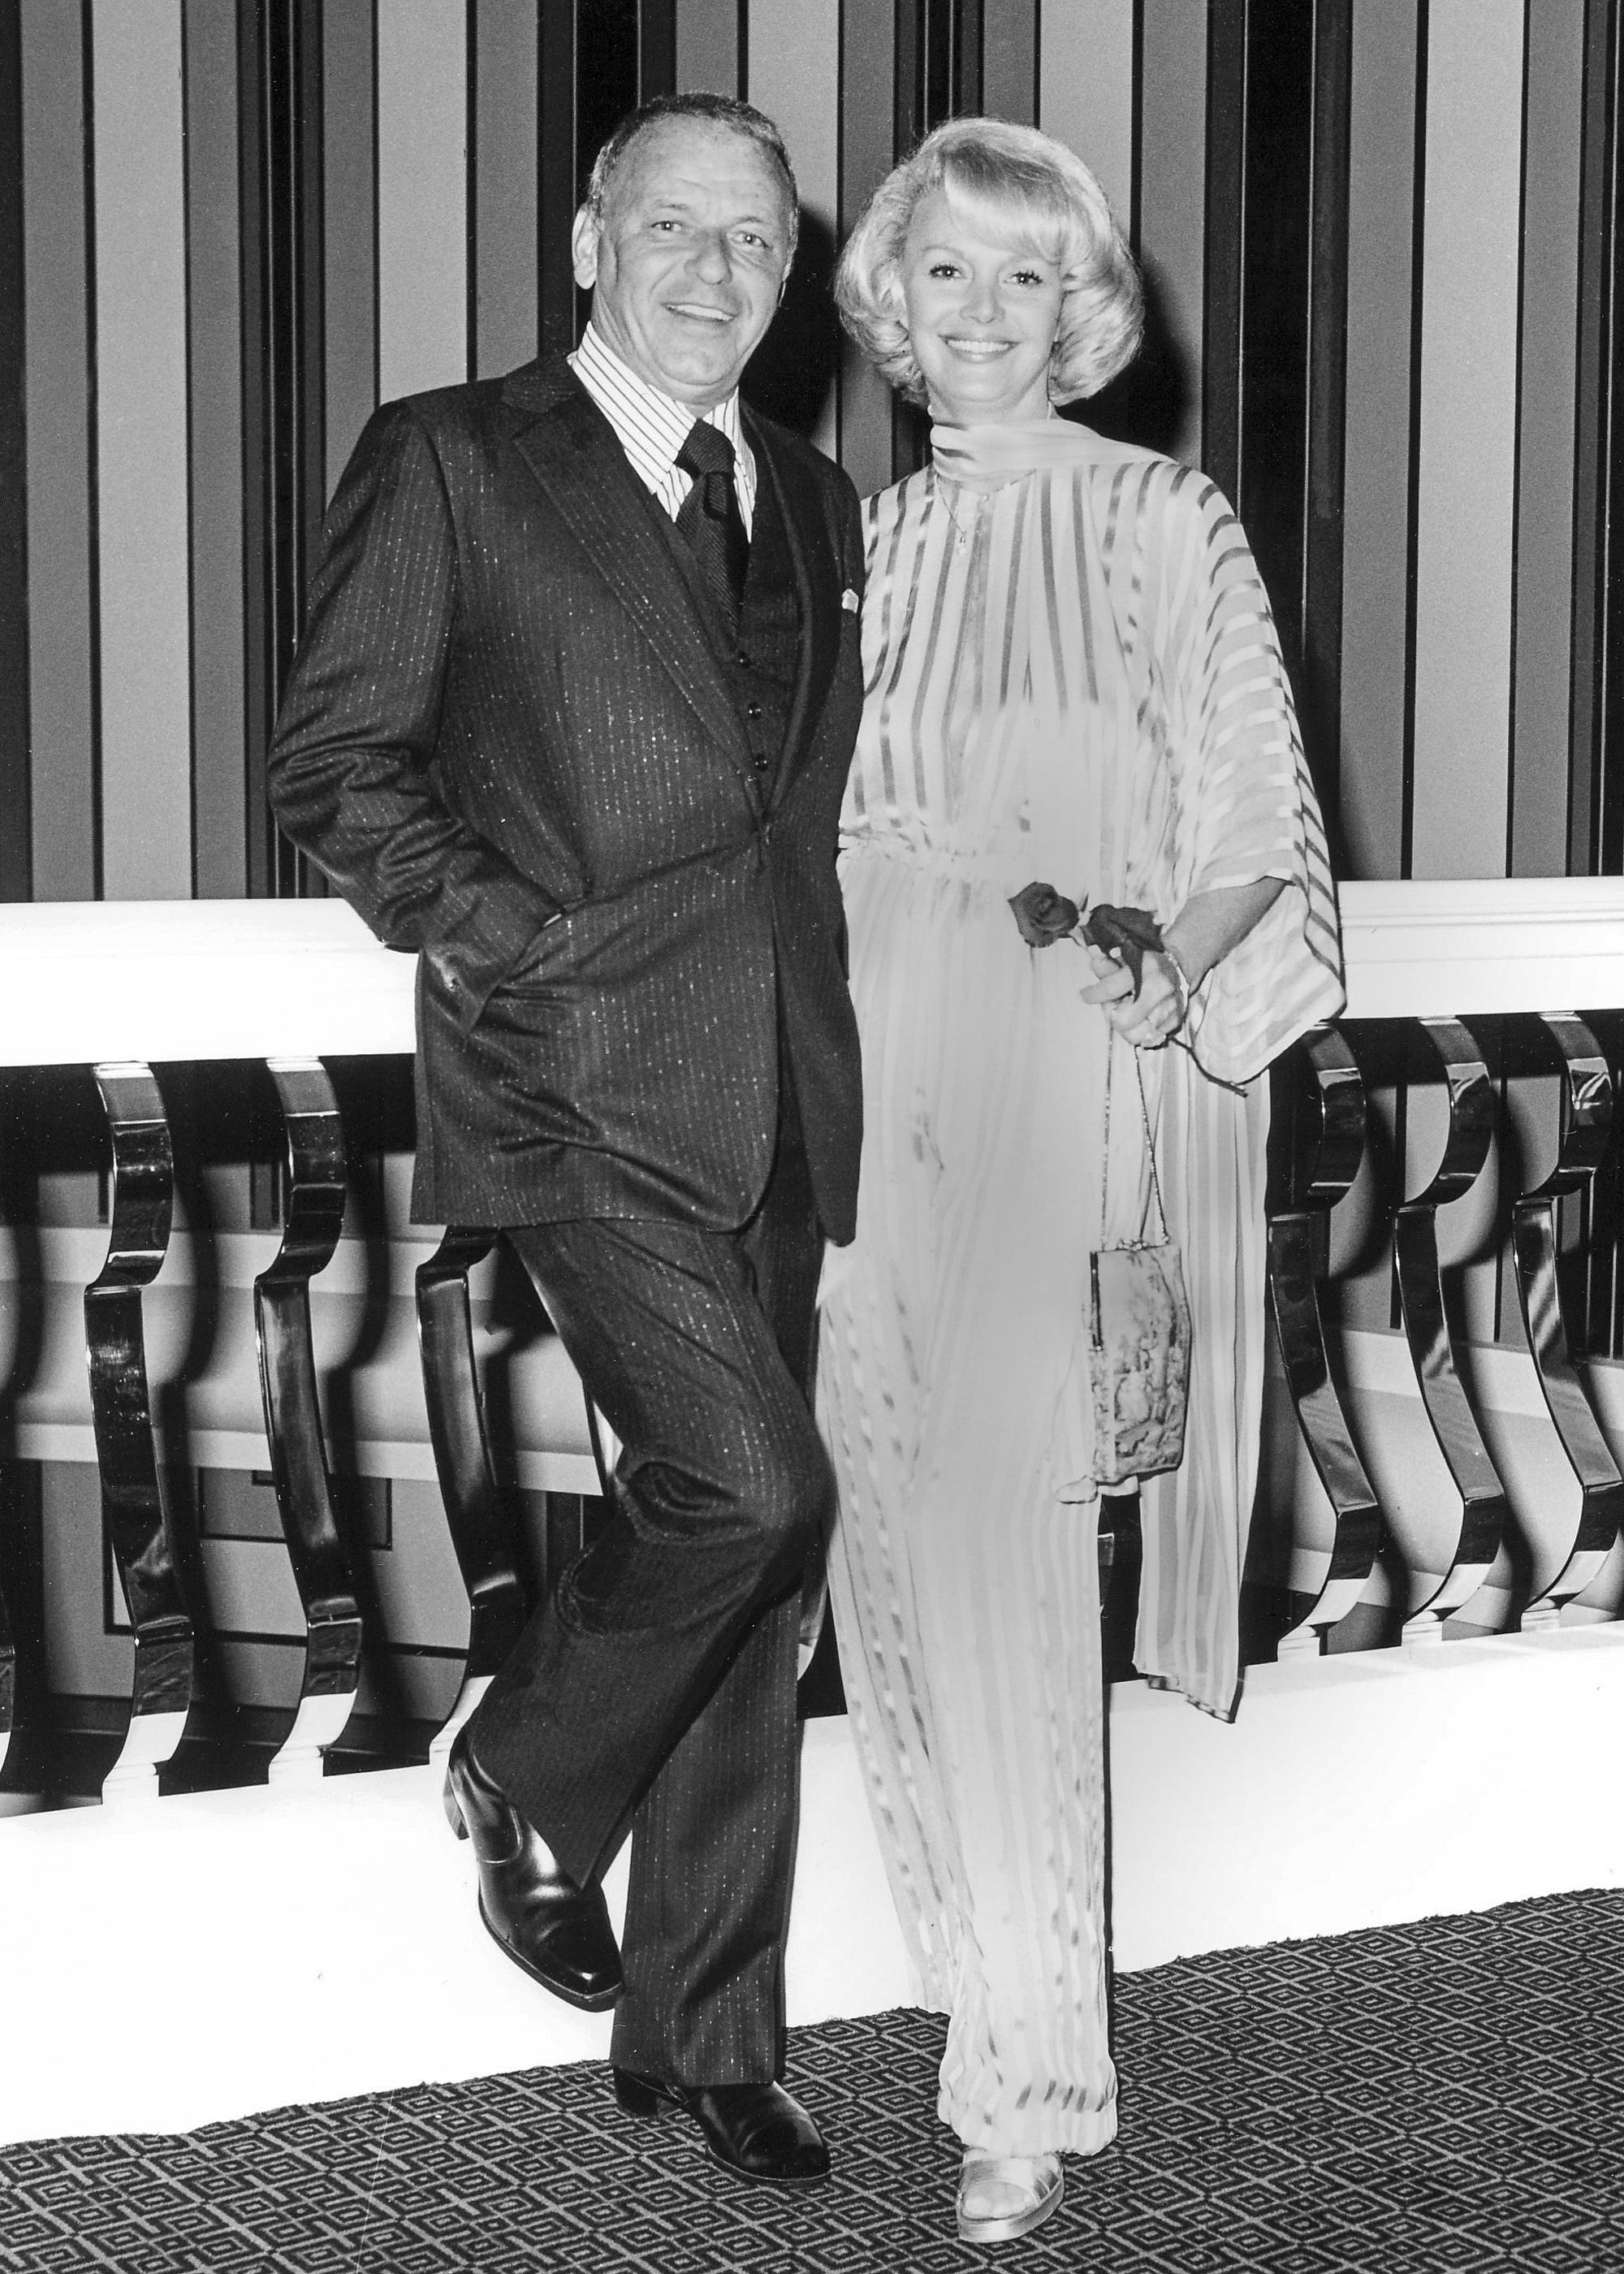 Frank Sinatra and Barbara Sinatra pose with at Caesars Palace in Las Vegas on May 23, 1976. Barbara Sinatra, the wife of late-singer Frank Sinatra, died Tuesday morning at her Rancho Mirage, Calif., home, a family spokesman announced. (CREDIT: Las Vegas News Bureau)